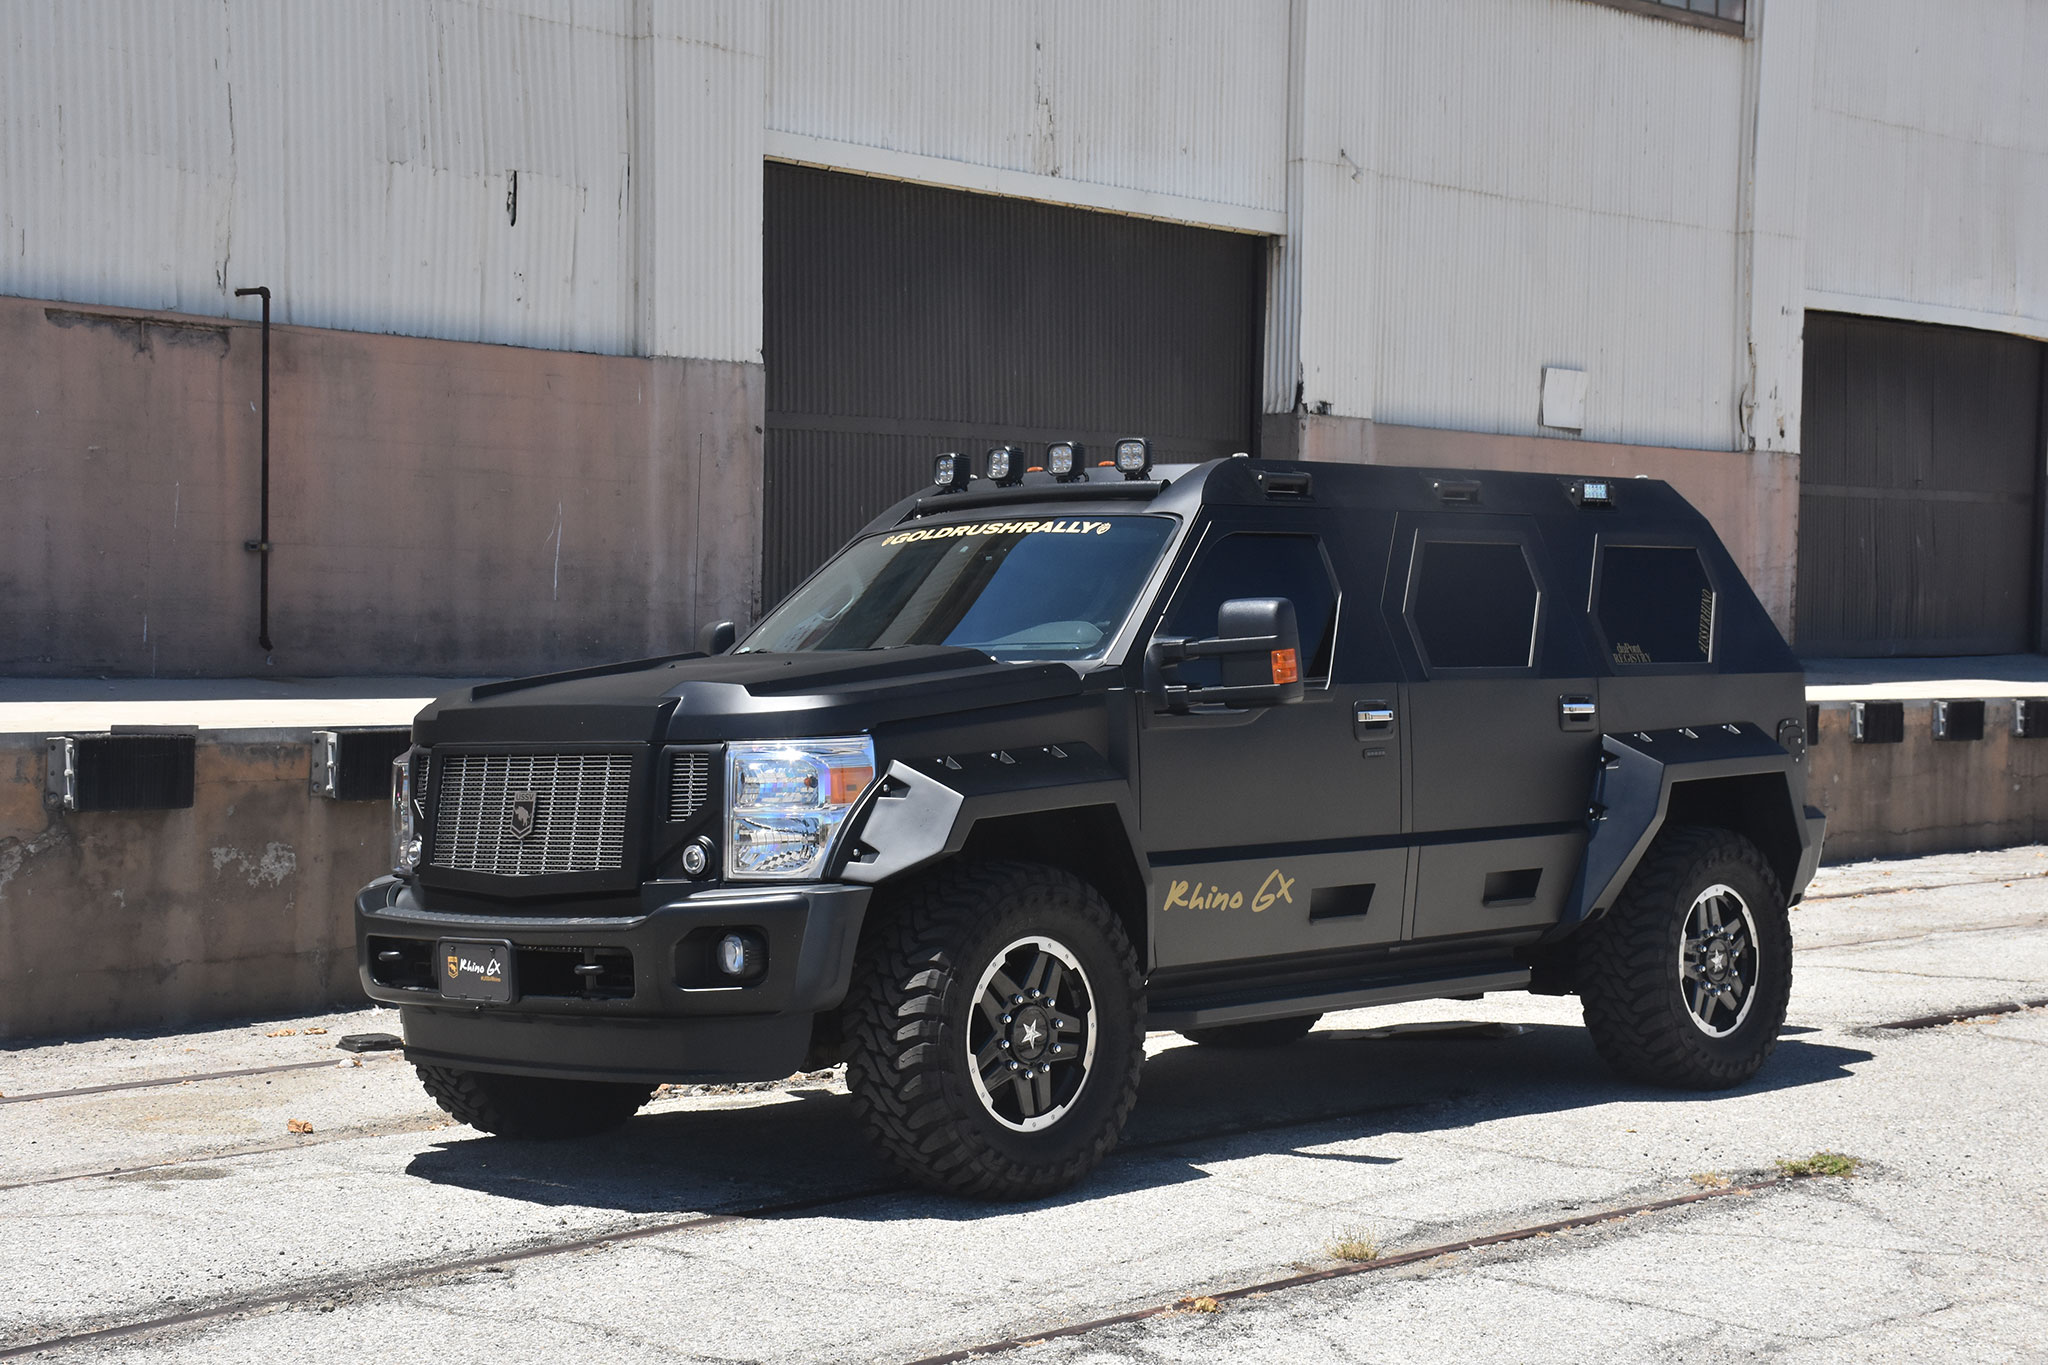 8 Passenger Suv >> The 2016 USSV Rhino GX is for the Dictator in All of Us | Automobile Magazine